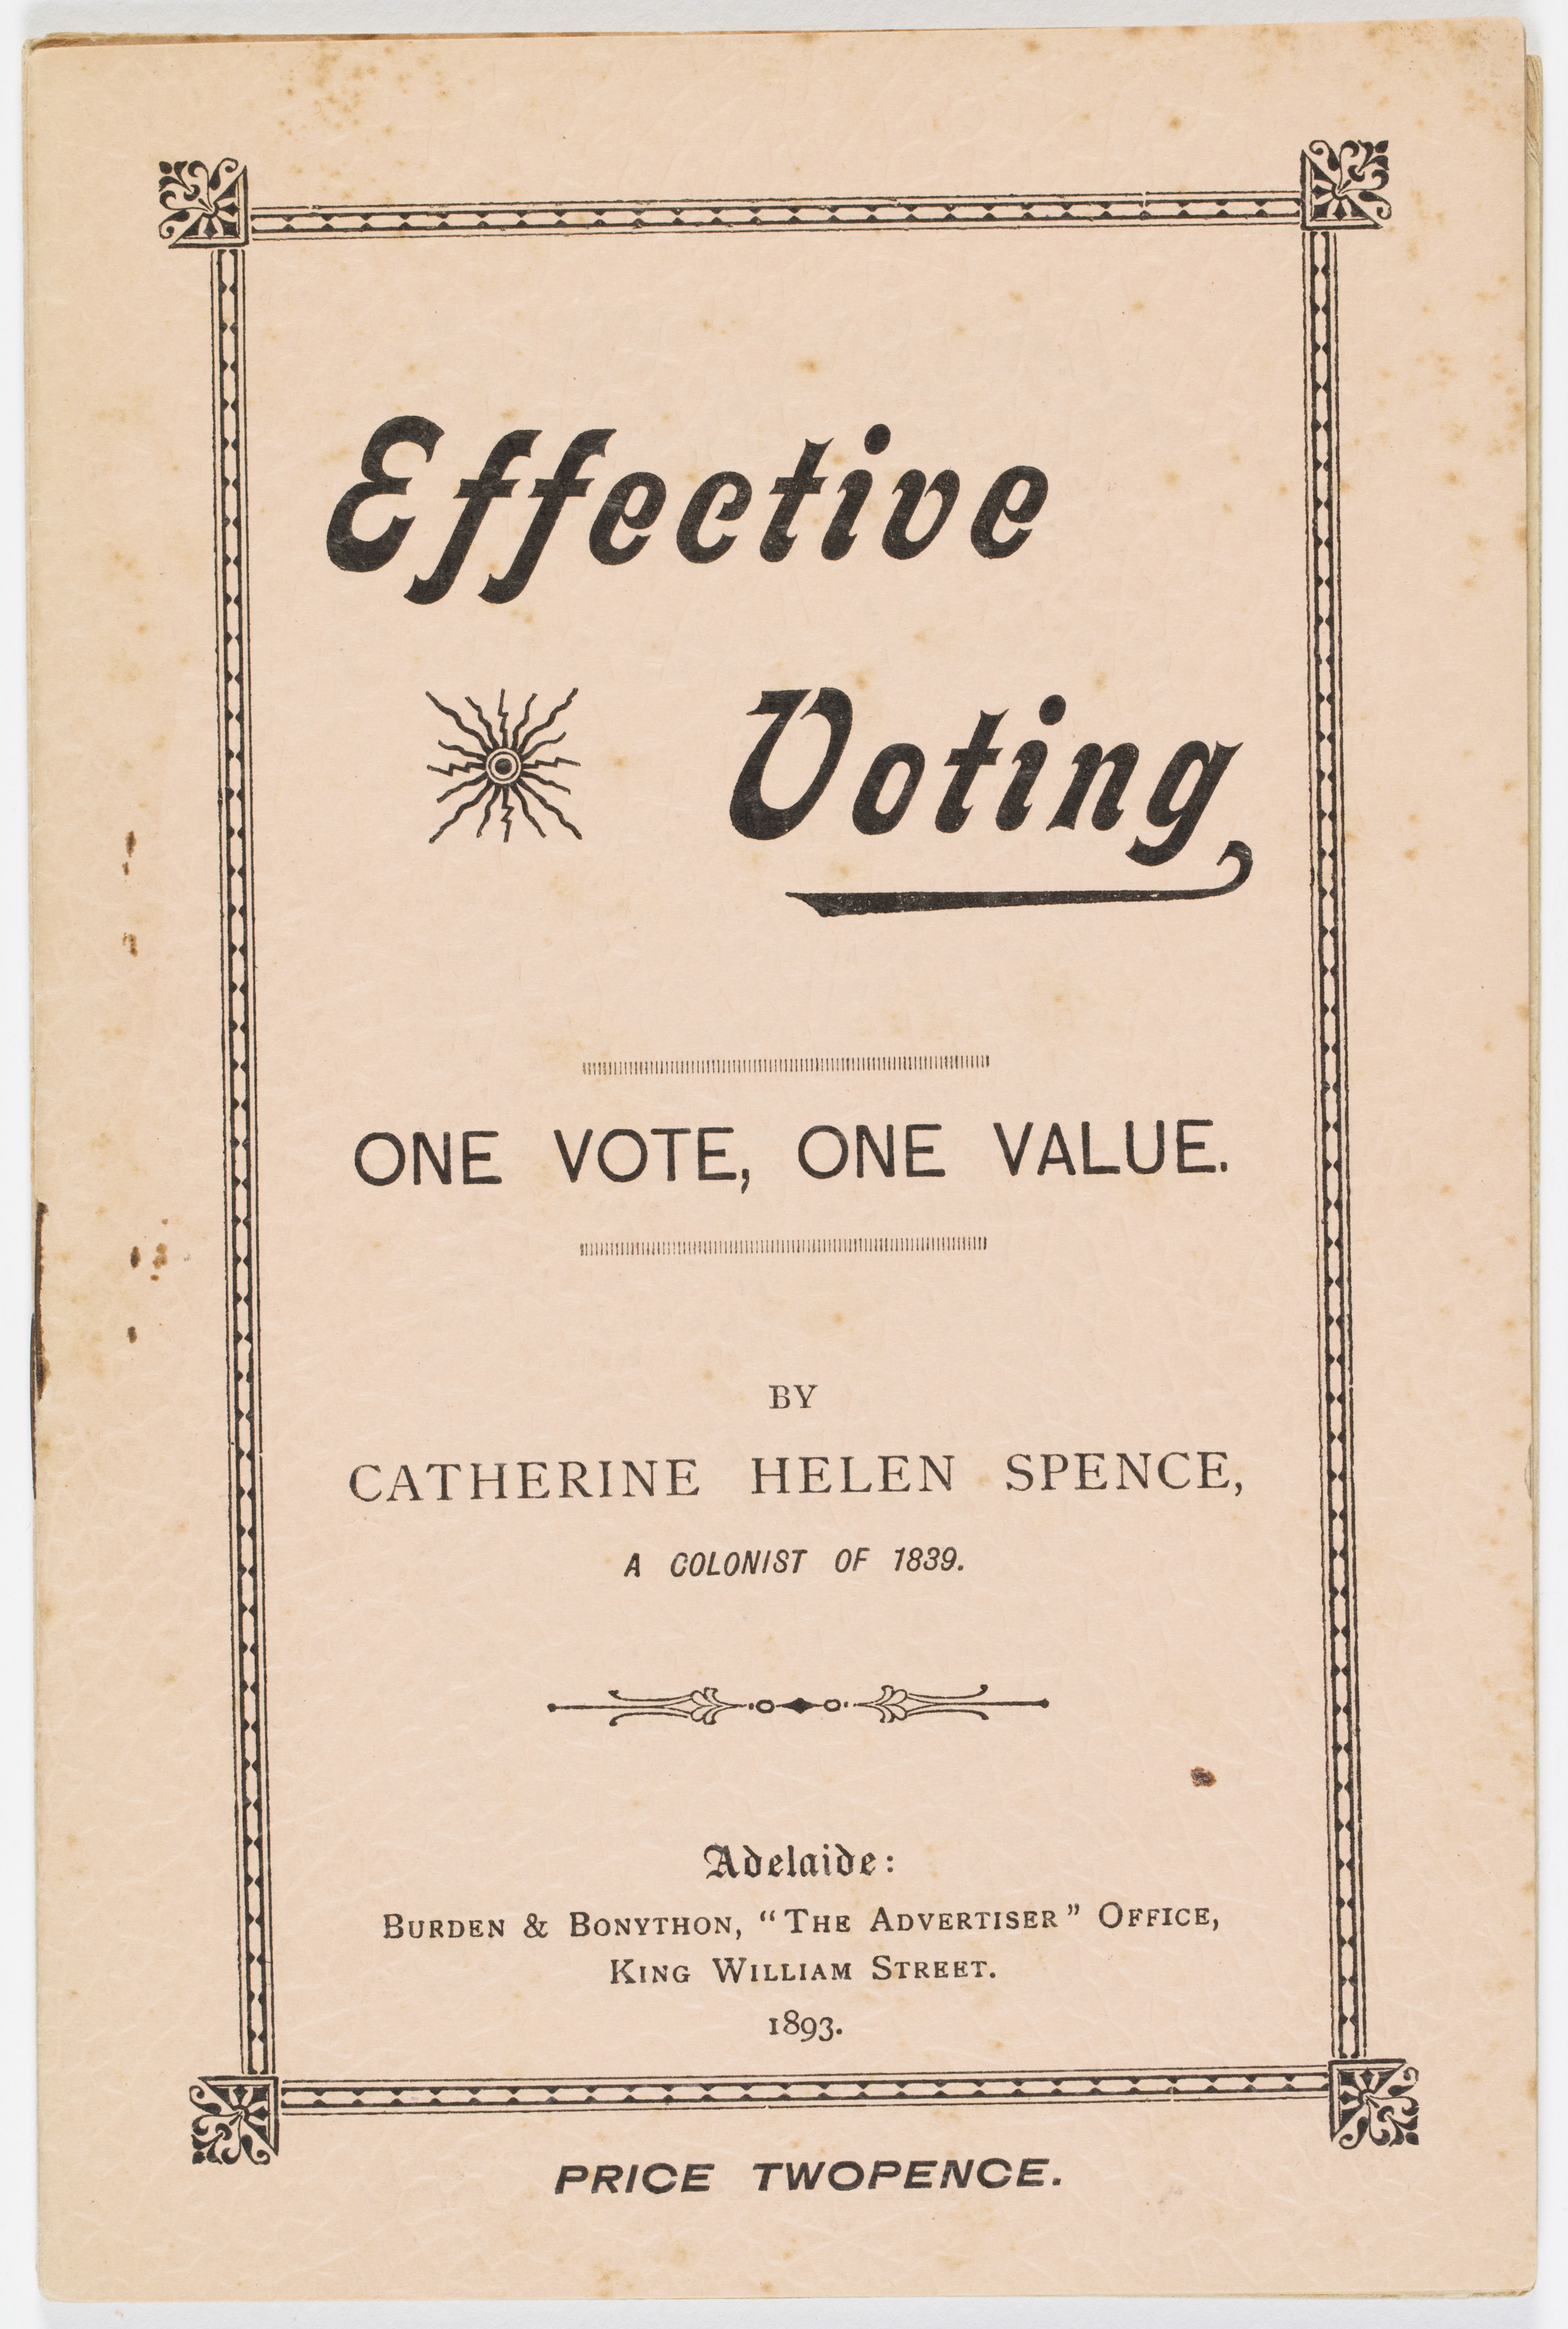 Cover page for Effective Voting